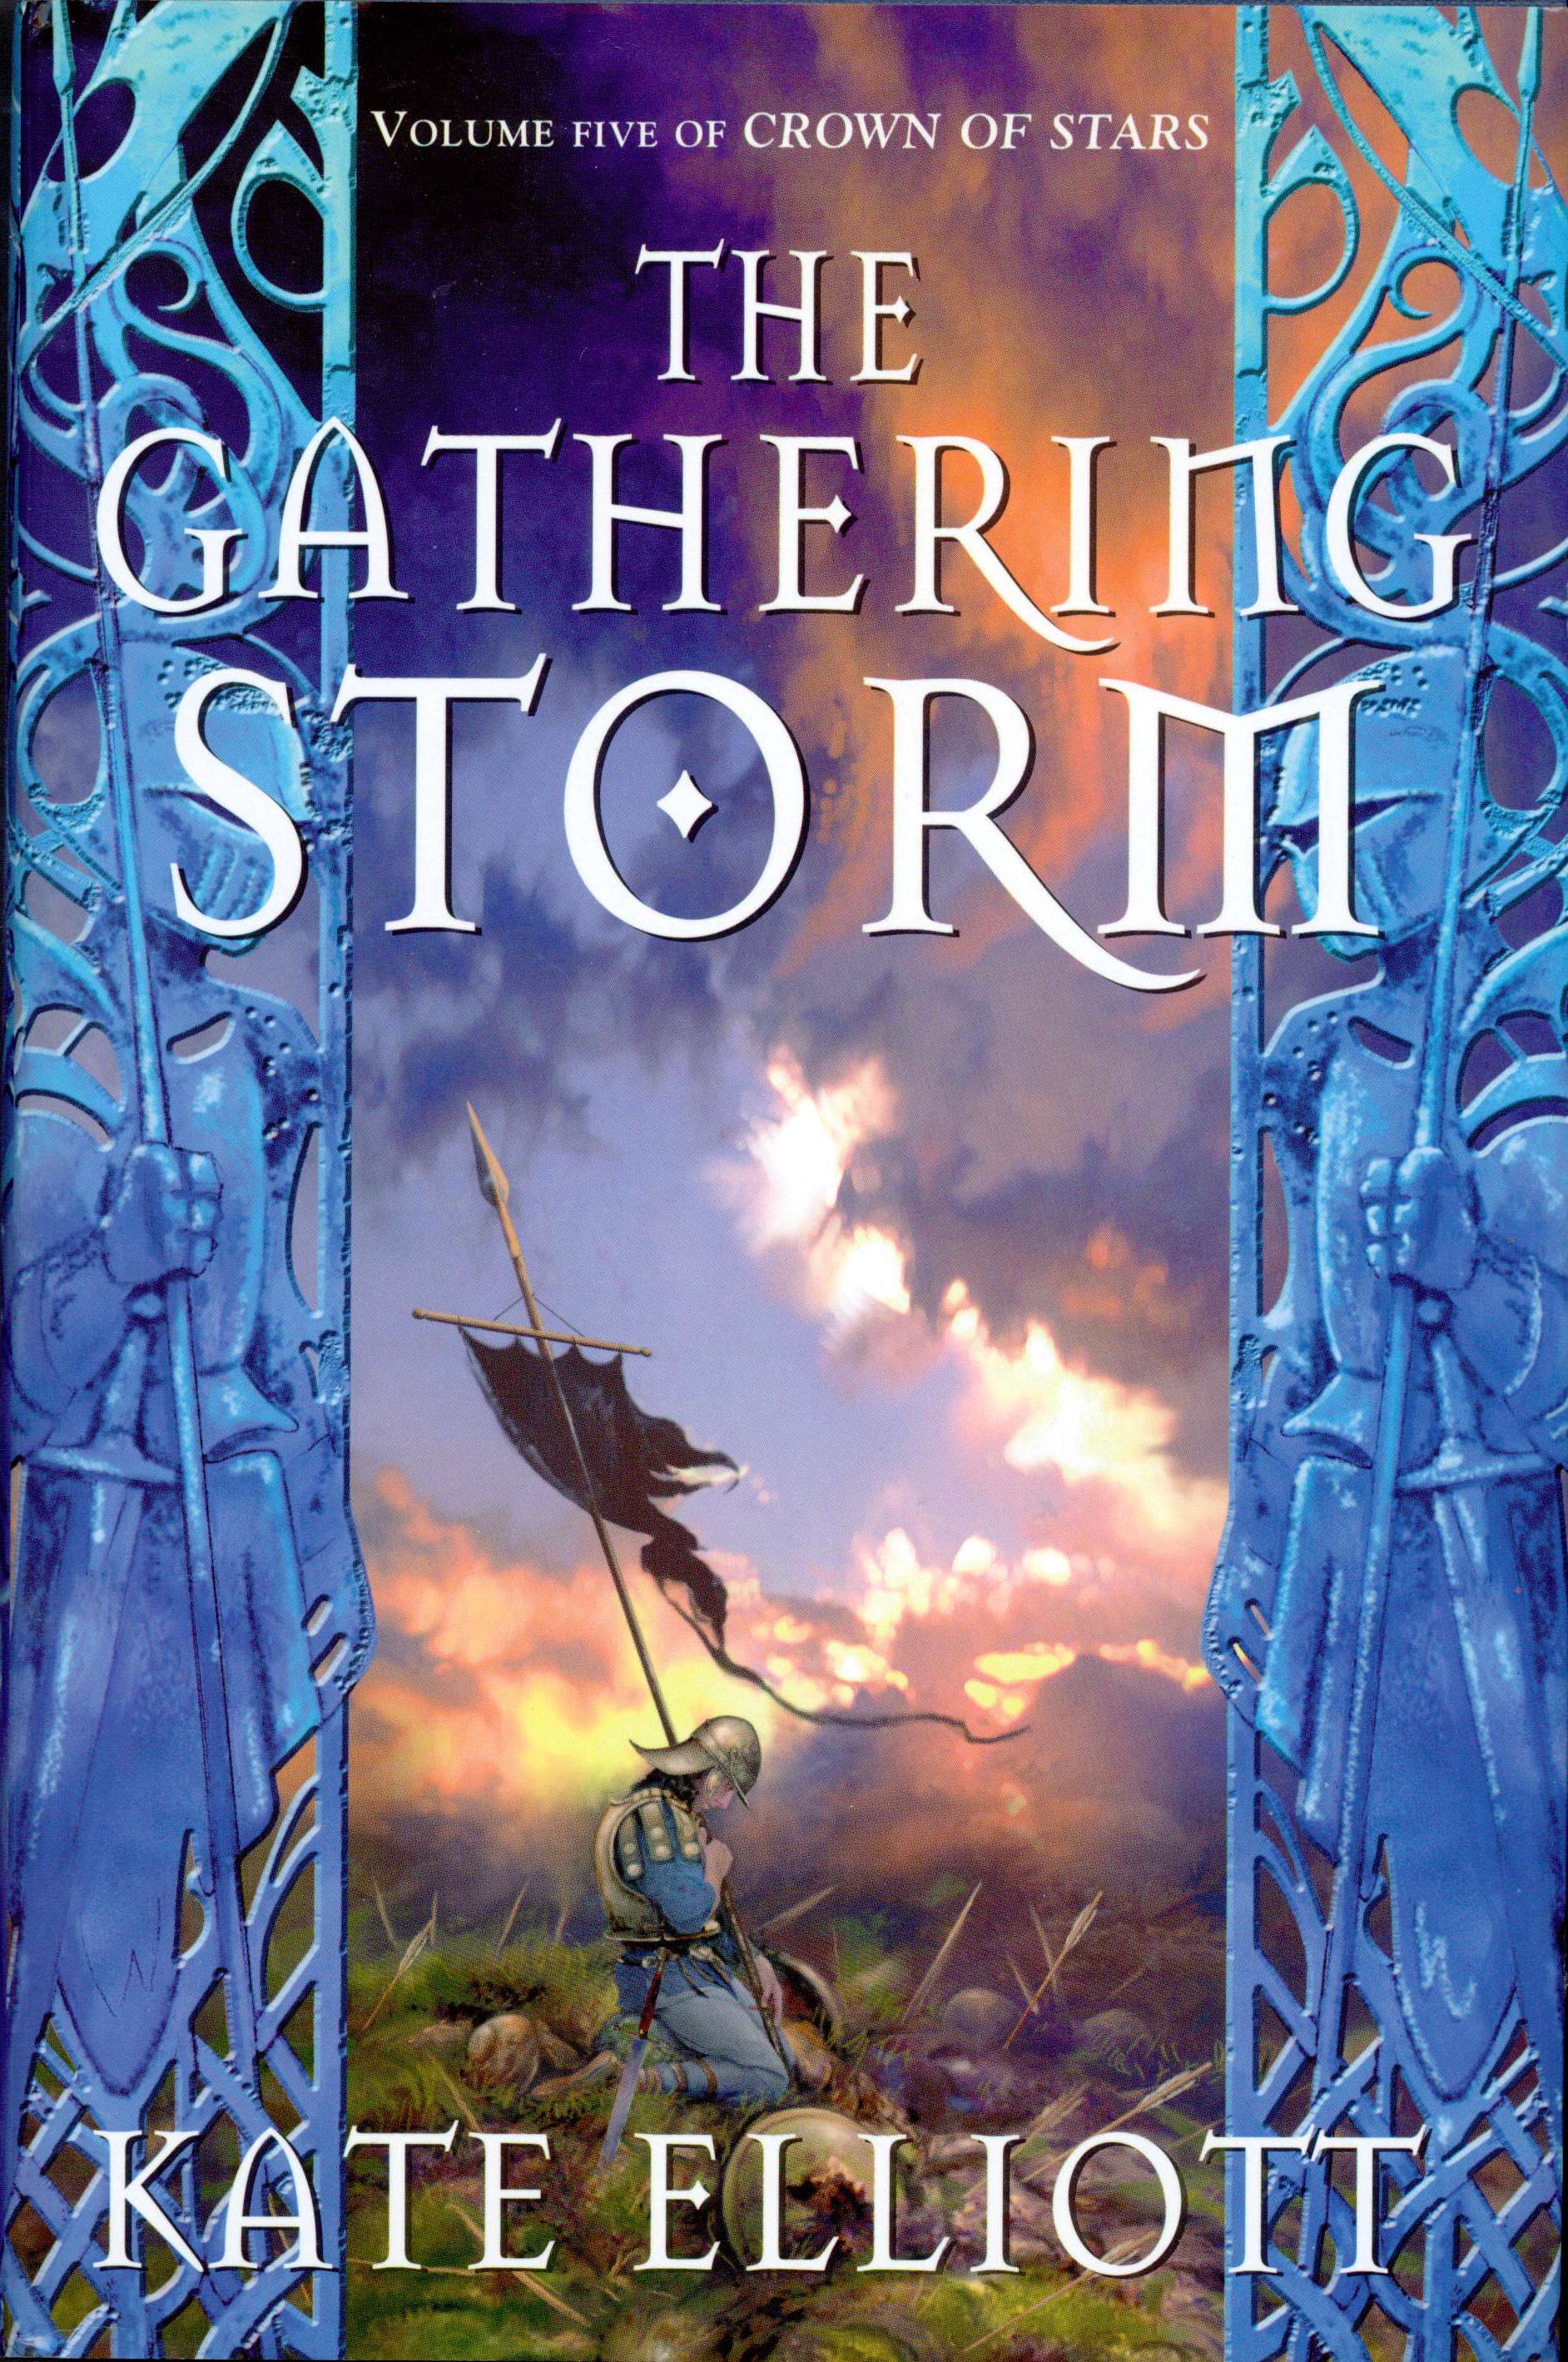 The Gathering Storm by Kate Elliot